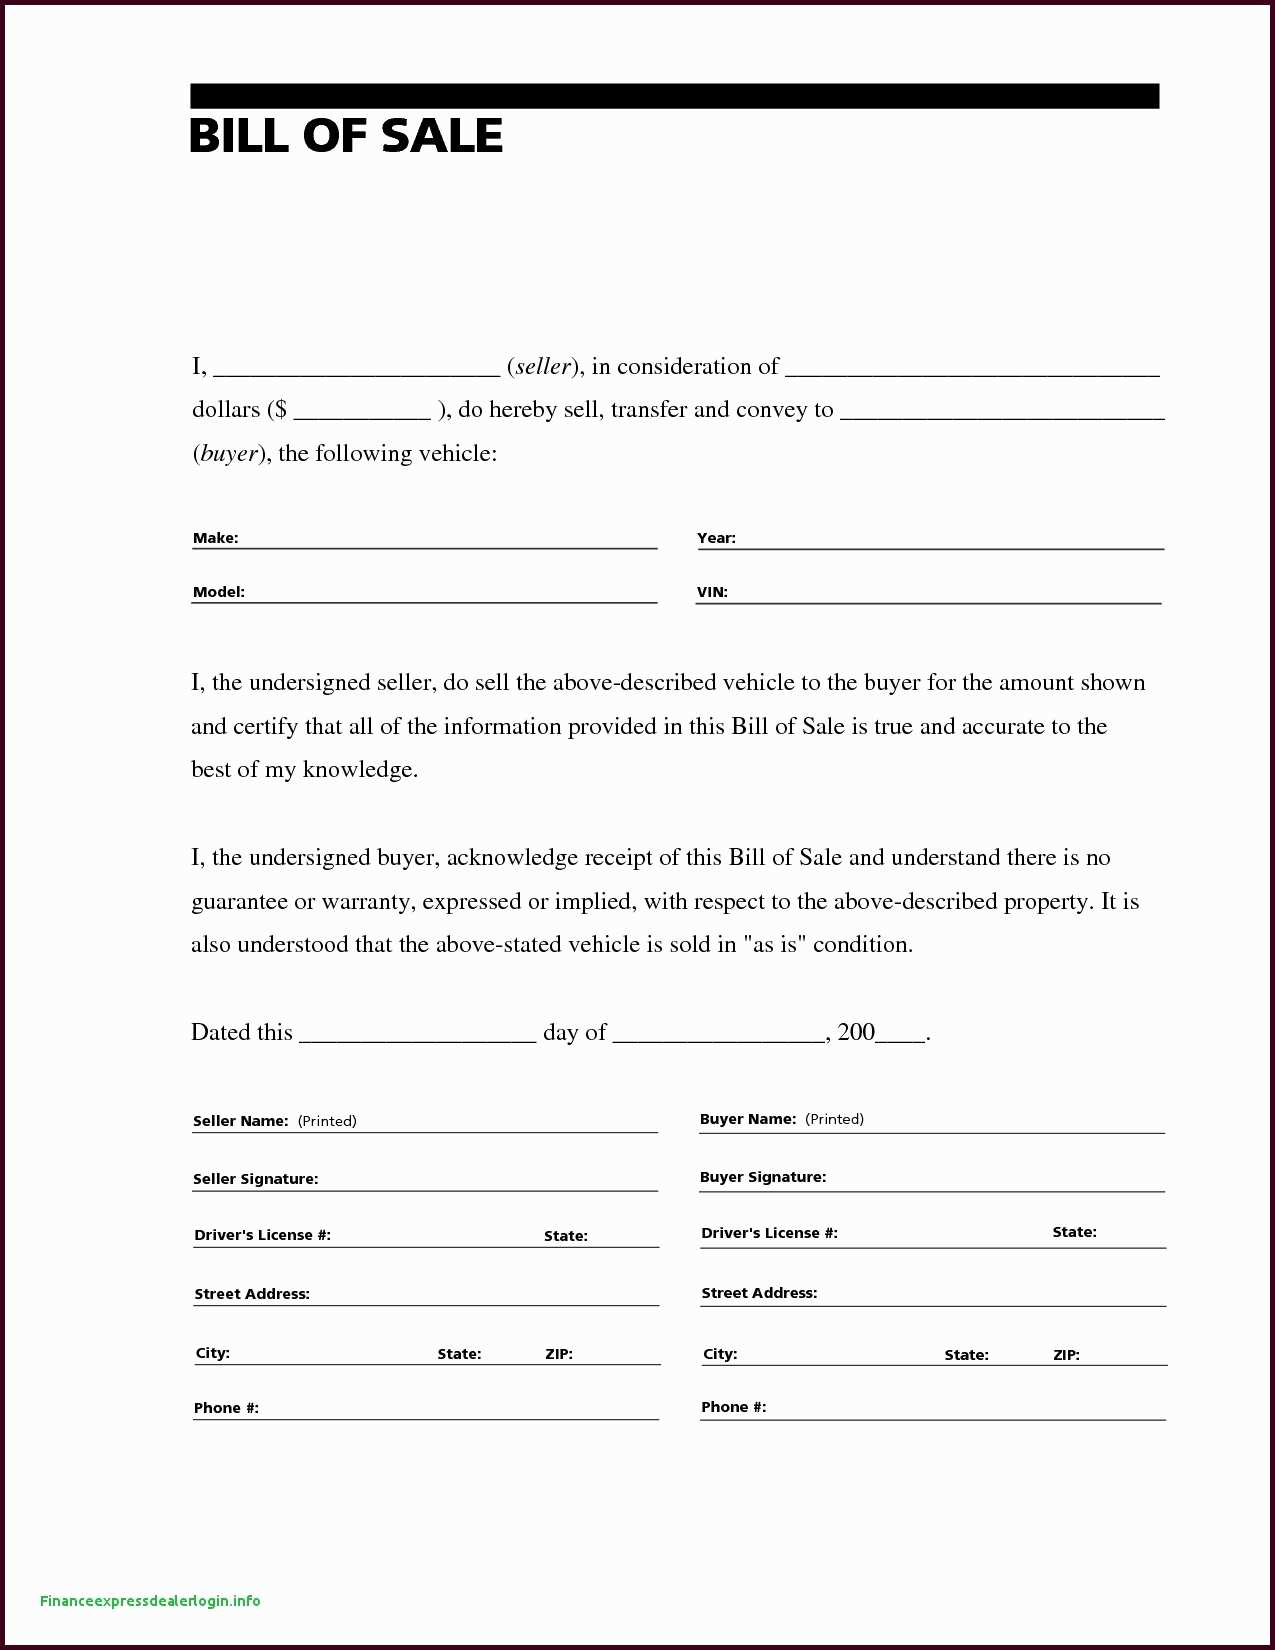 used car as is bill of sale artist agreement template unique bill of sales template for car